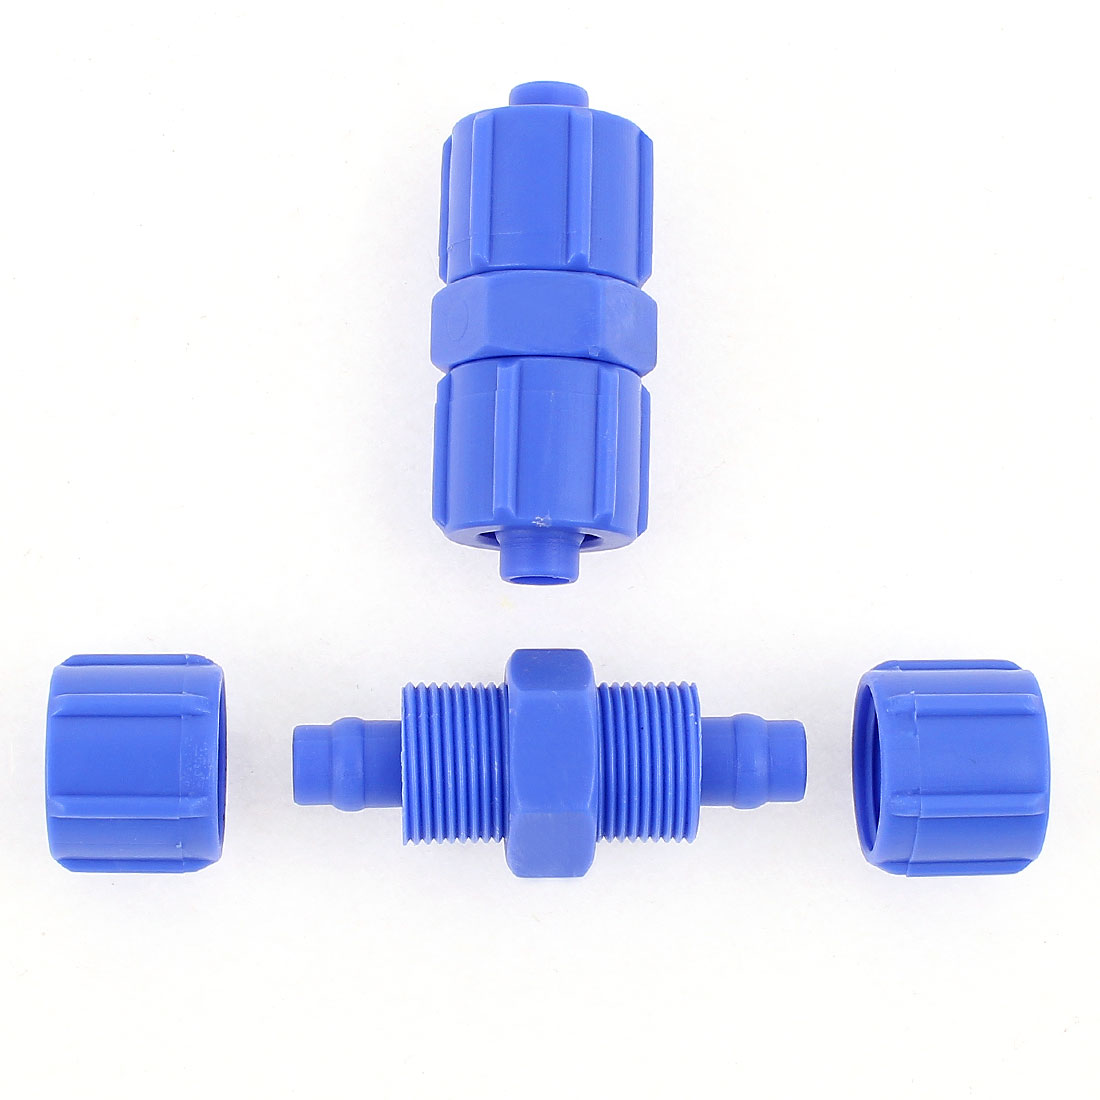 2Pcs 10mm x 10mm Air Pneumatic Quick Fitting Pipe Hose Tube Connector Coupler